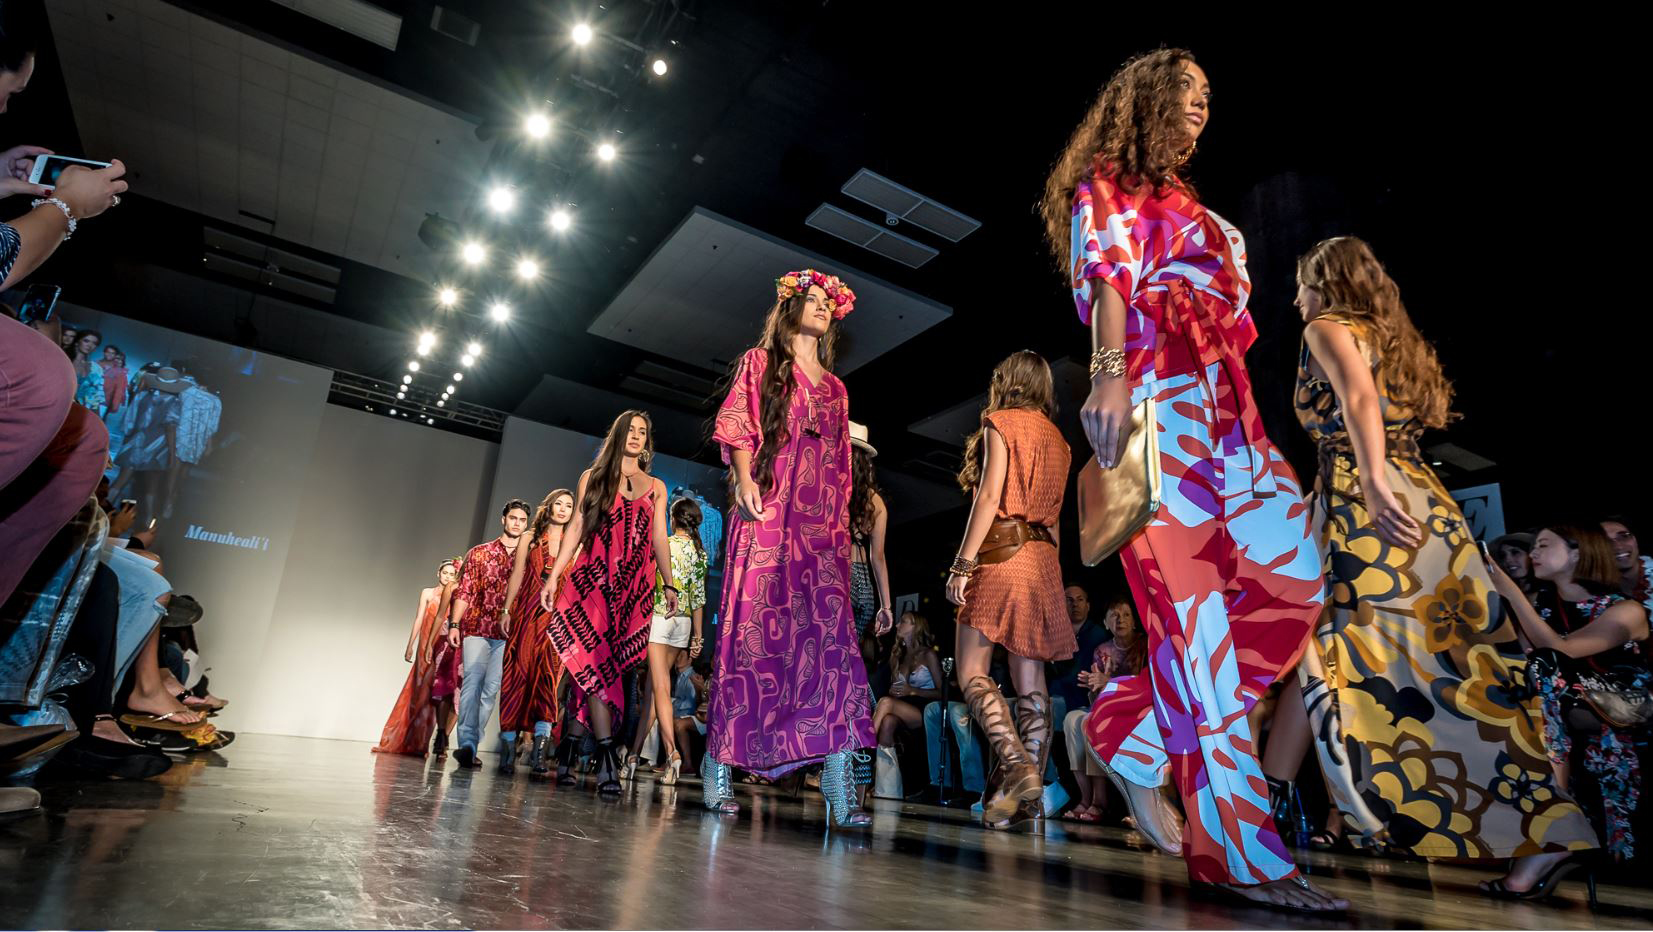 Models walk the runway in Hawaiian style at the HONOLULU Magazine Fashion Week 2015 Manuhealii Fashion Show. (Photo: Courtesy of Honolulu Fashion Week / Ross D. Hamamura)